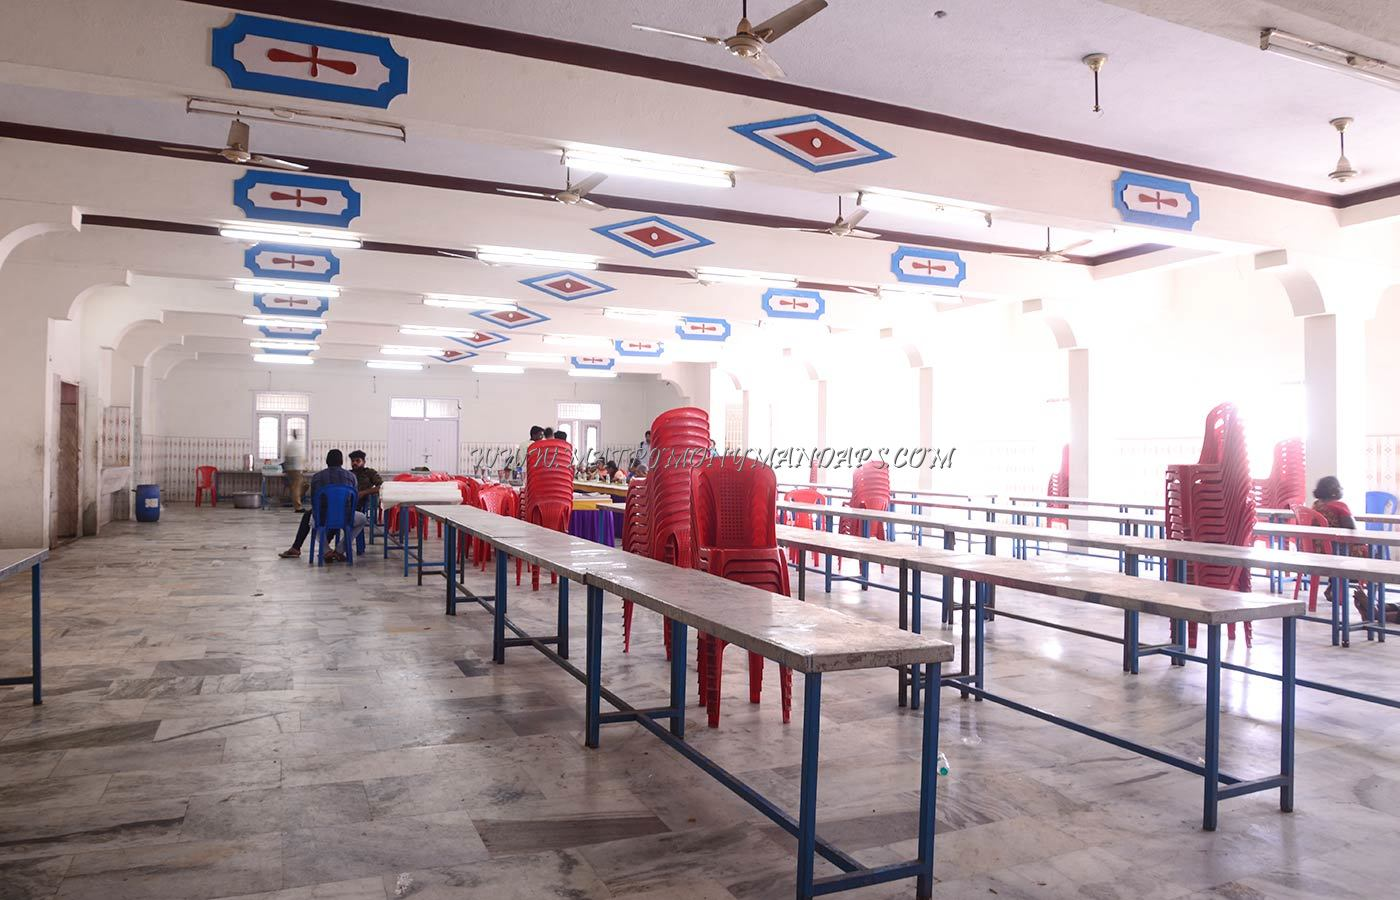 Find the availability of the Sri Vignesh Mahal (A/C) in Pammal, Chennai and avail special offers